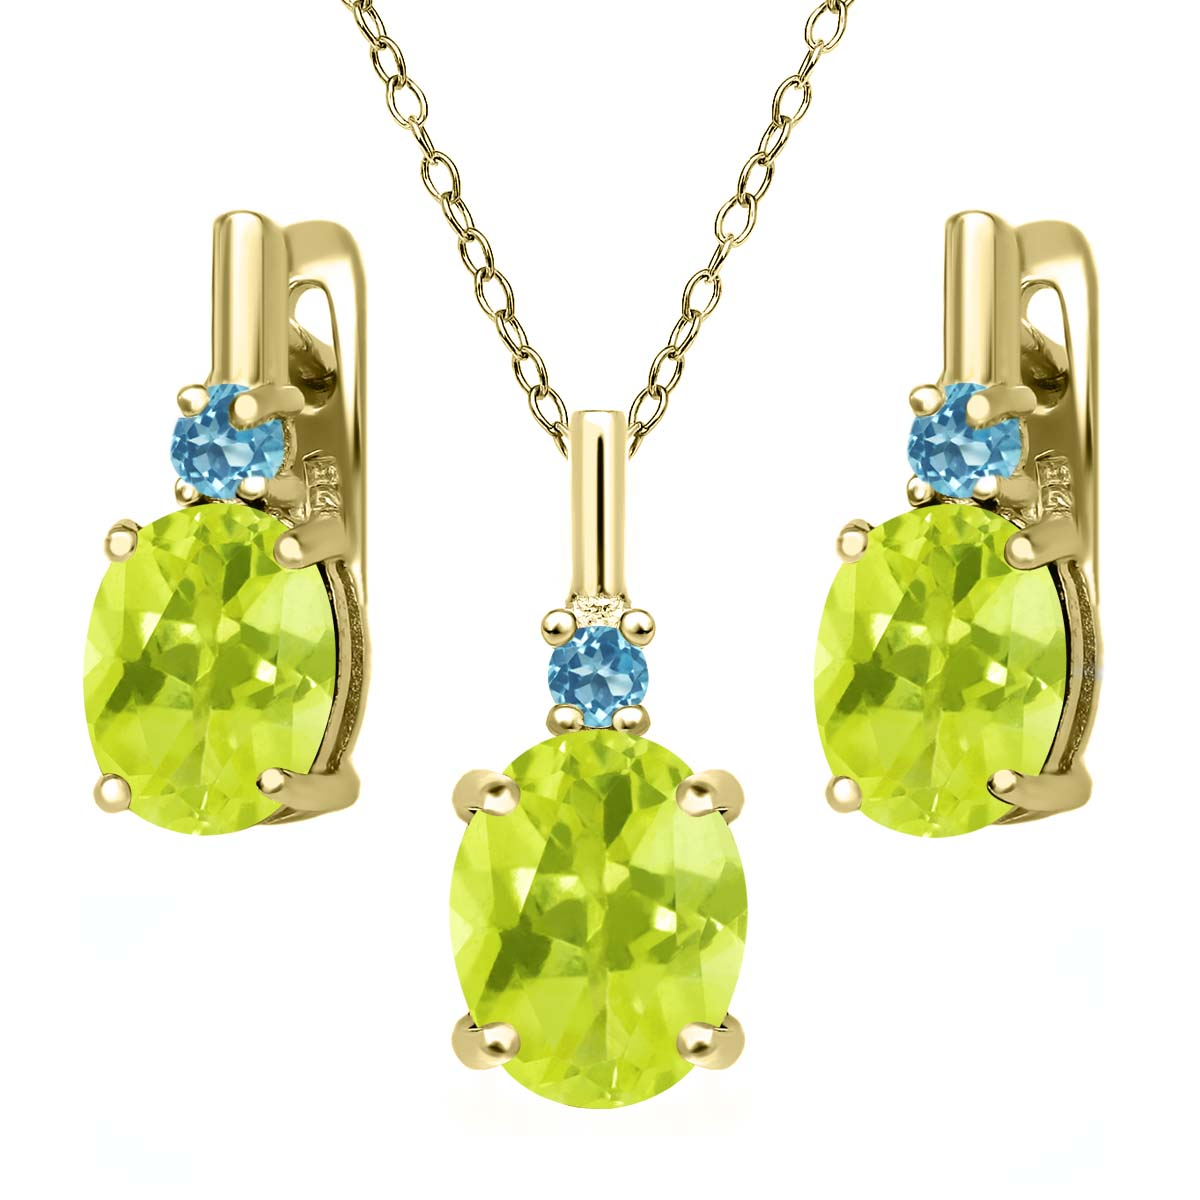 5.03 Ct Yellow Lemon Quartz 18K Yellow Gold Plated Silver Pendant Earrings Set by